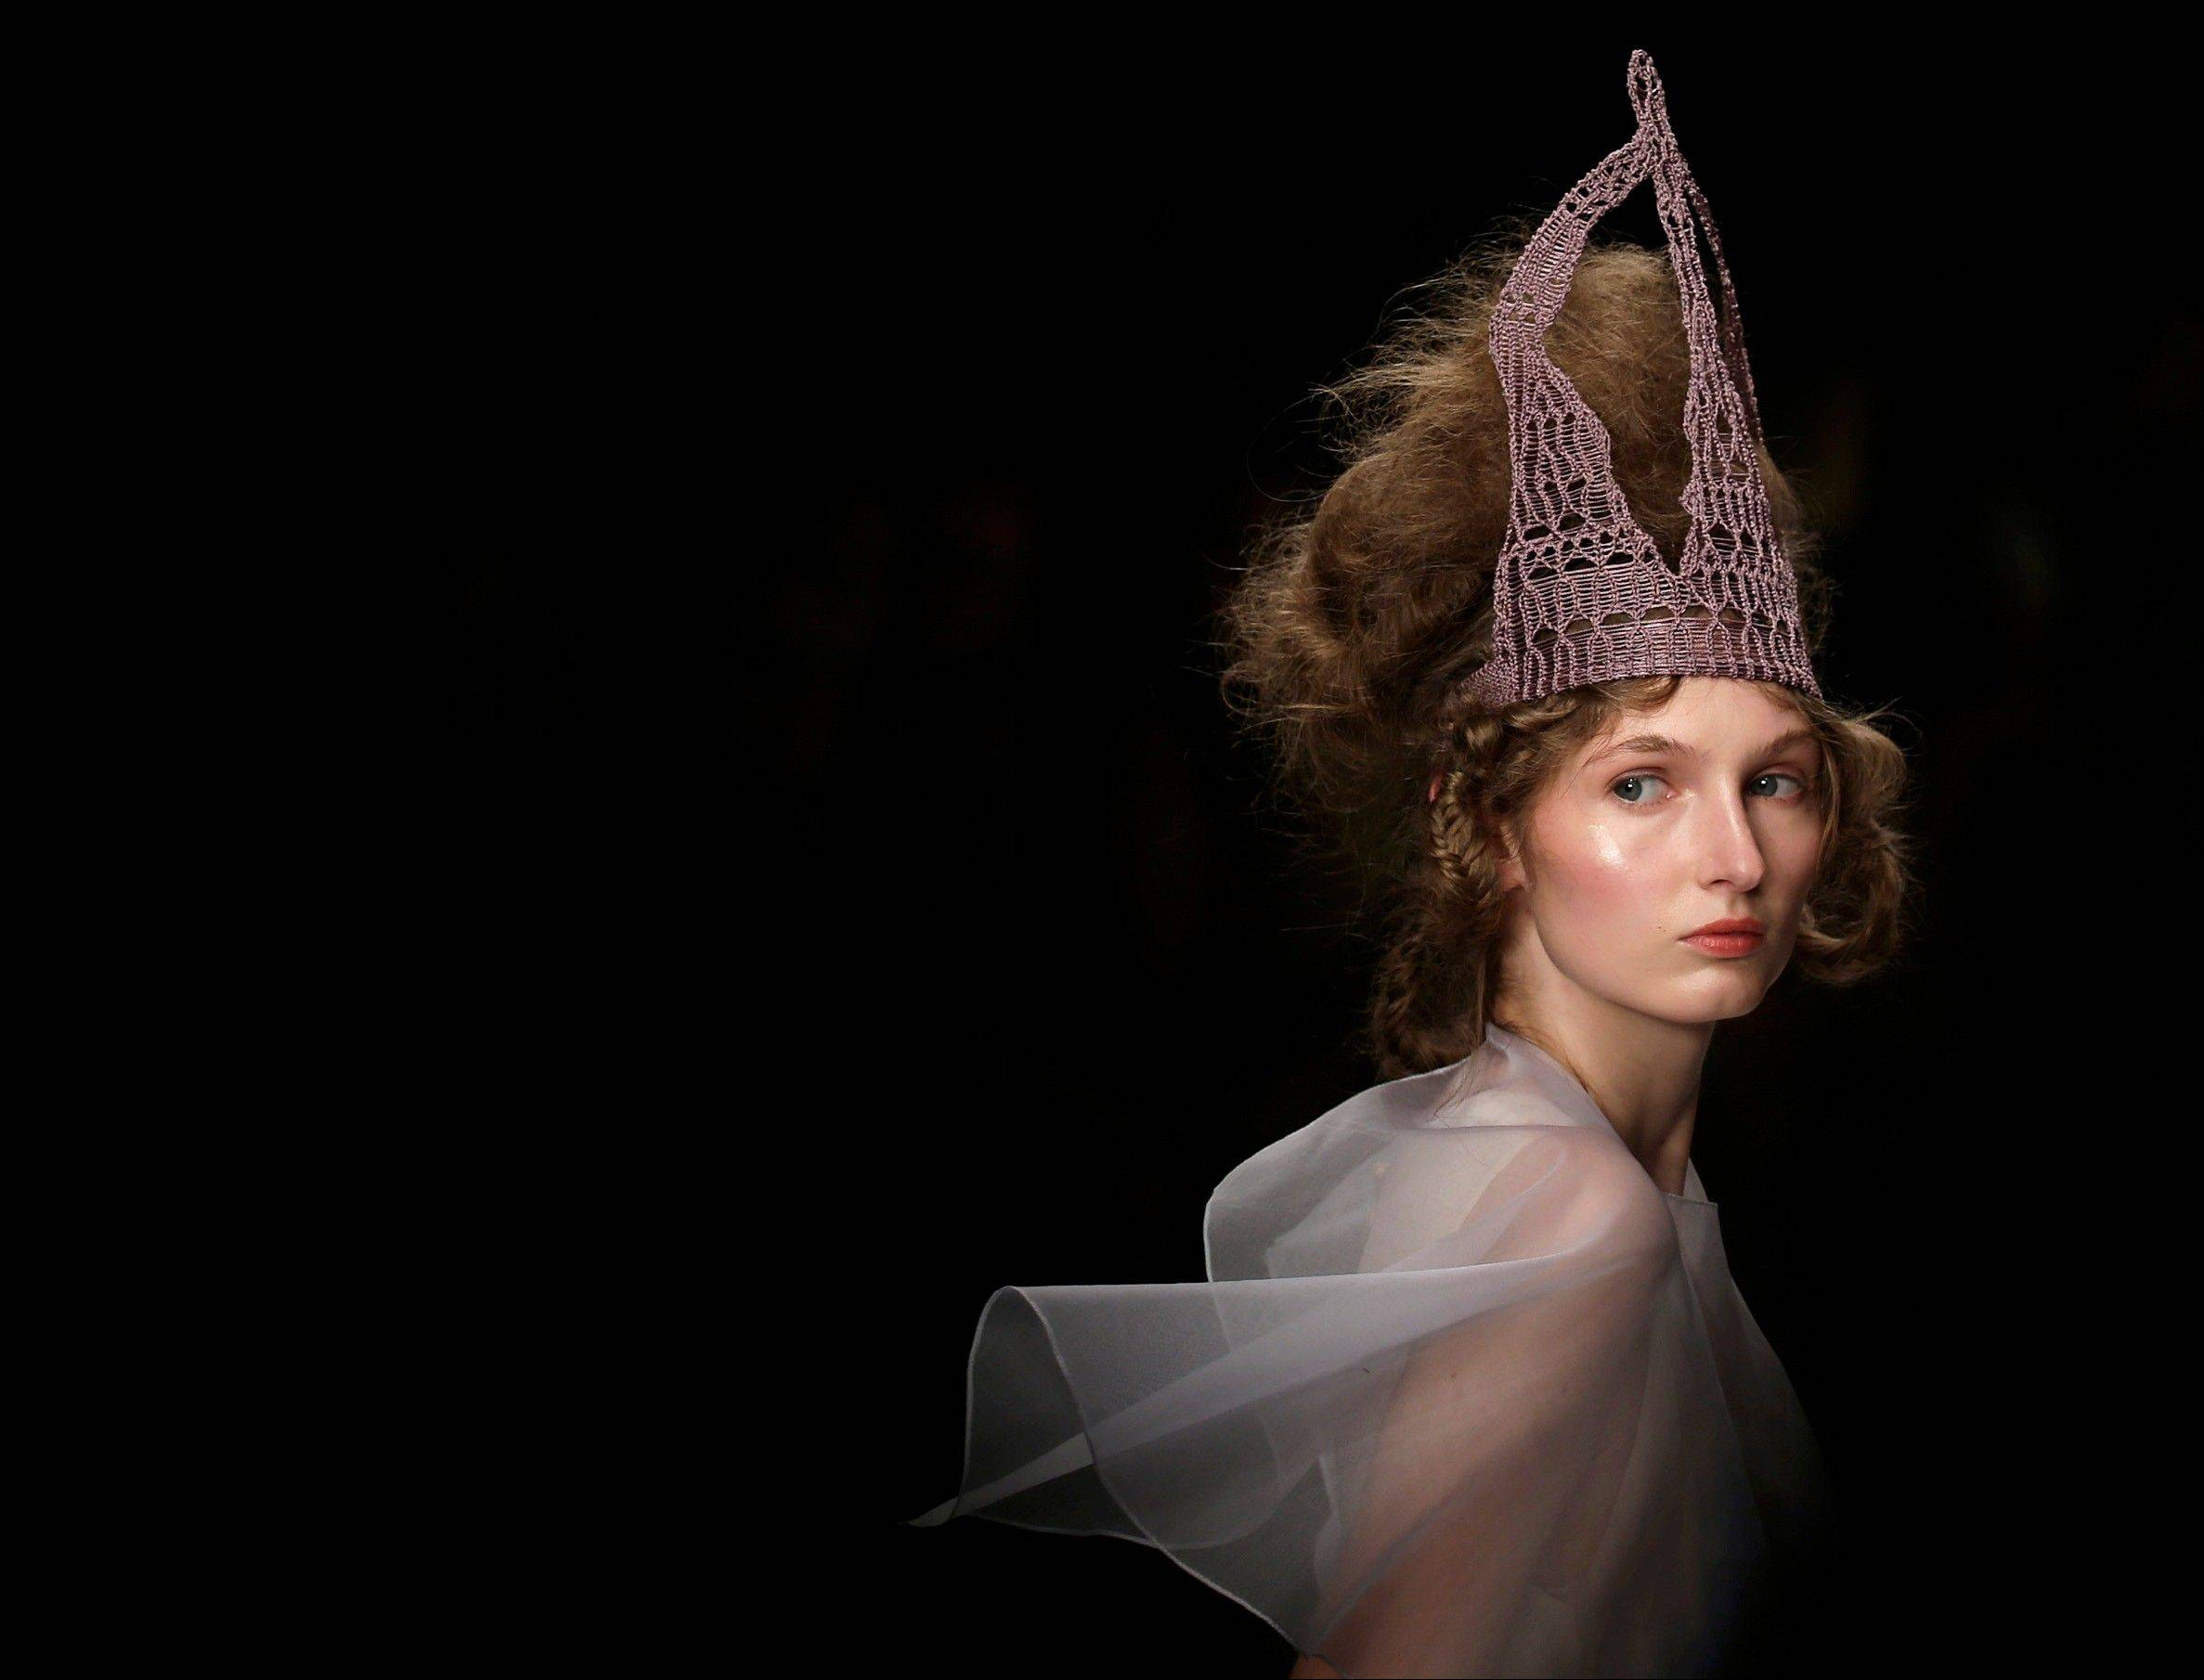 A model presents a design by Bora Aksu during his Spring/Summer 2013 show at London Fashion Week in London, Friday, Sept. 14, 2012.